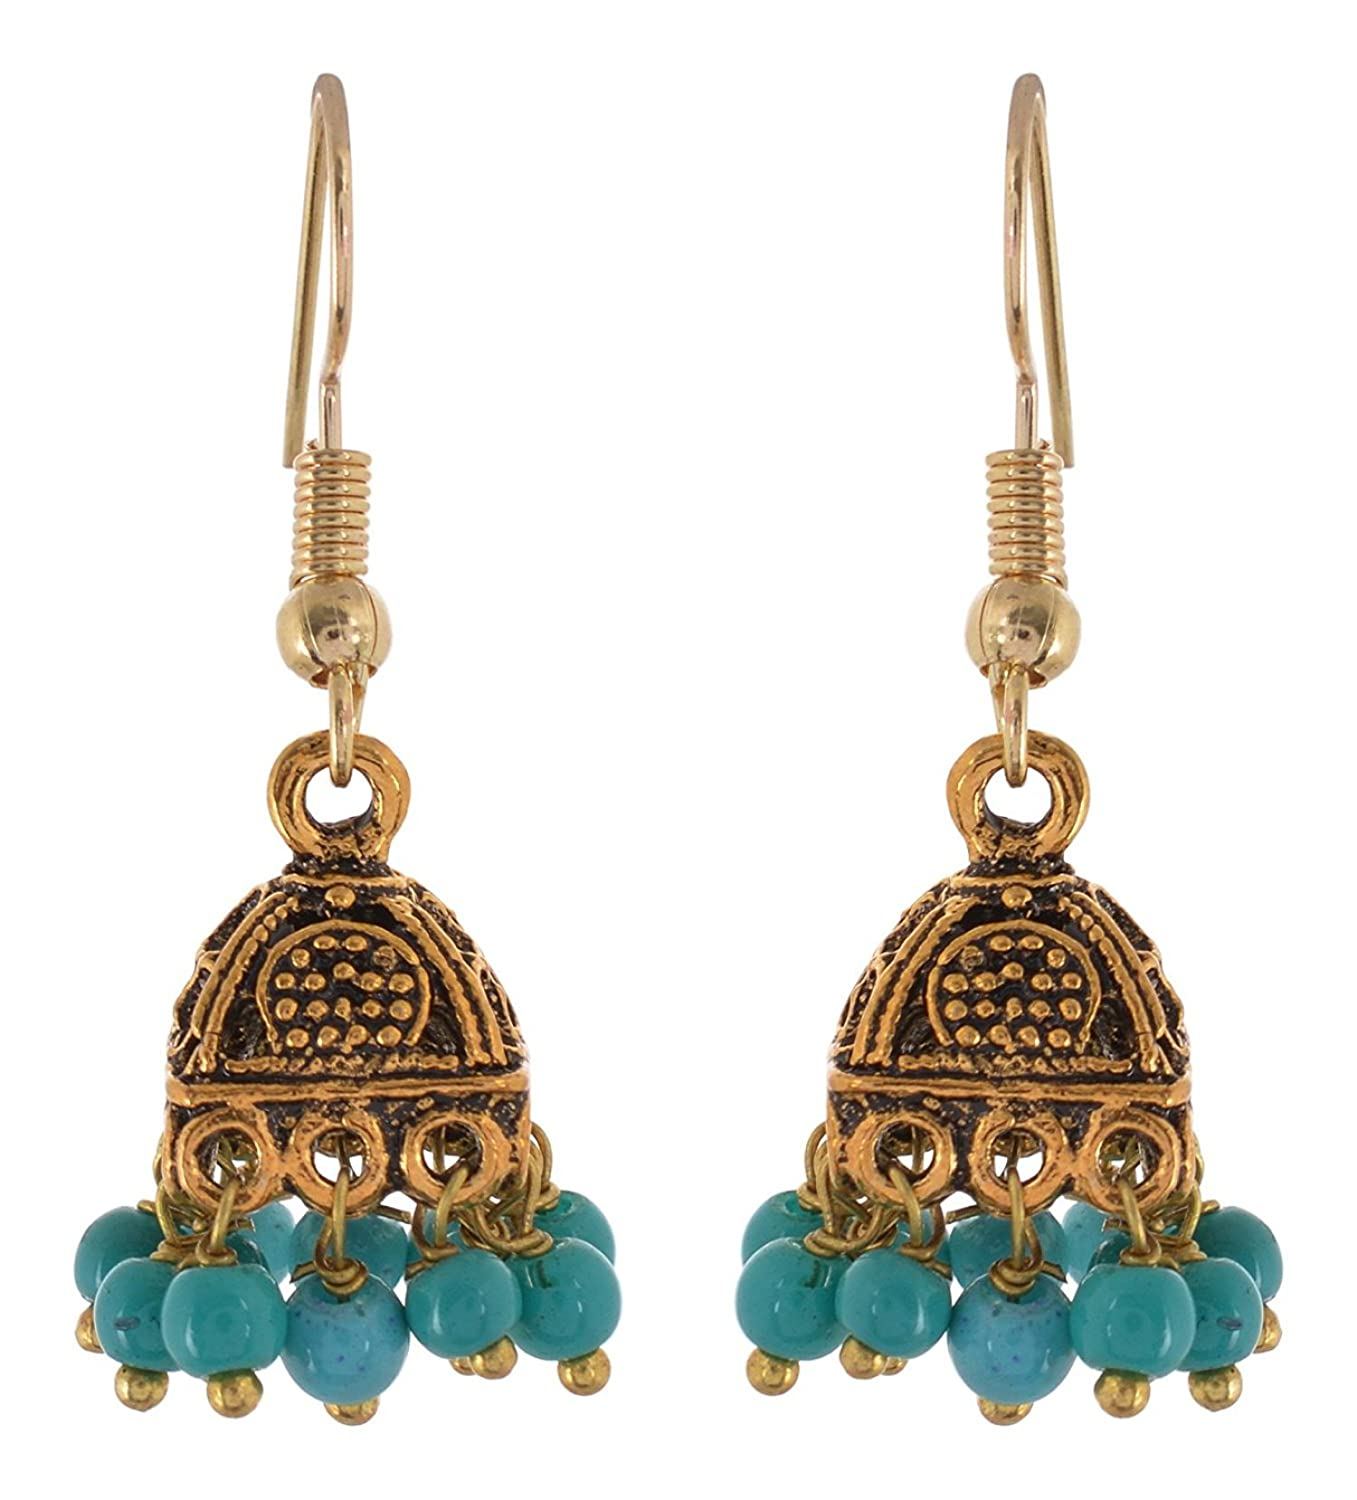 Subharpit Turquouise Small Beauty Little Charm Metal Jhumki Earring for Woman /& Girls